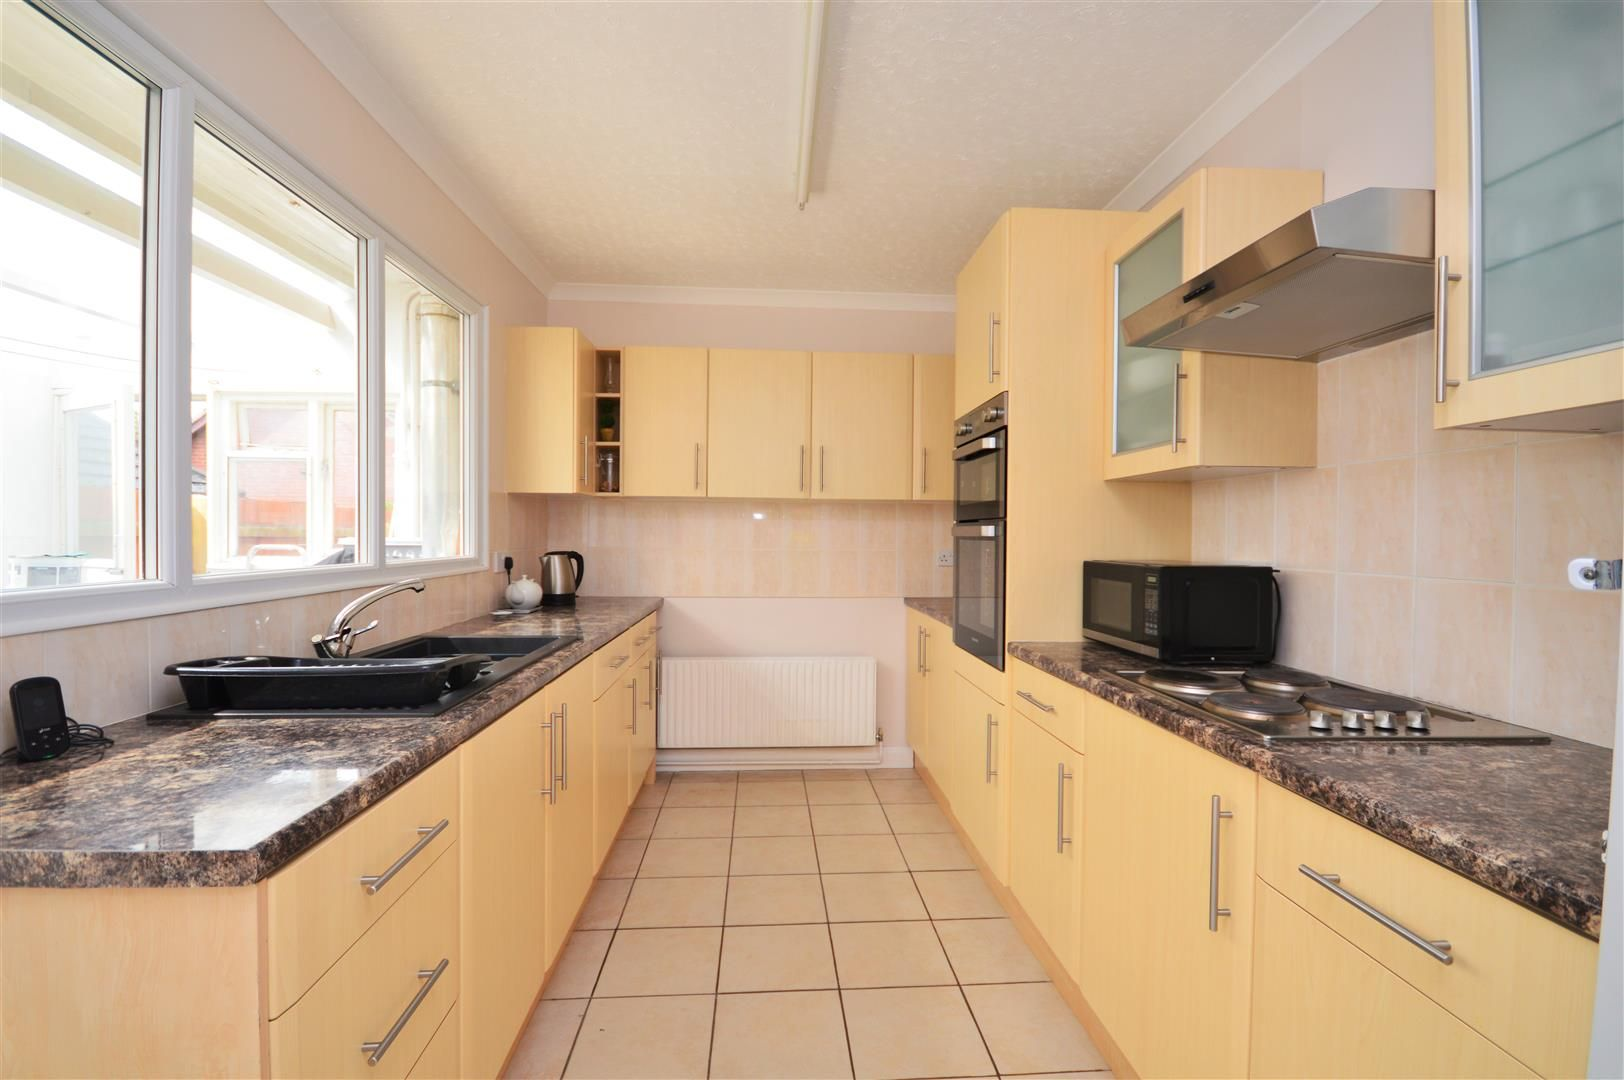 4 bed detached-bungalow for sale in Marden 5